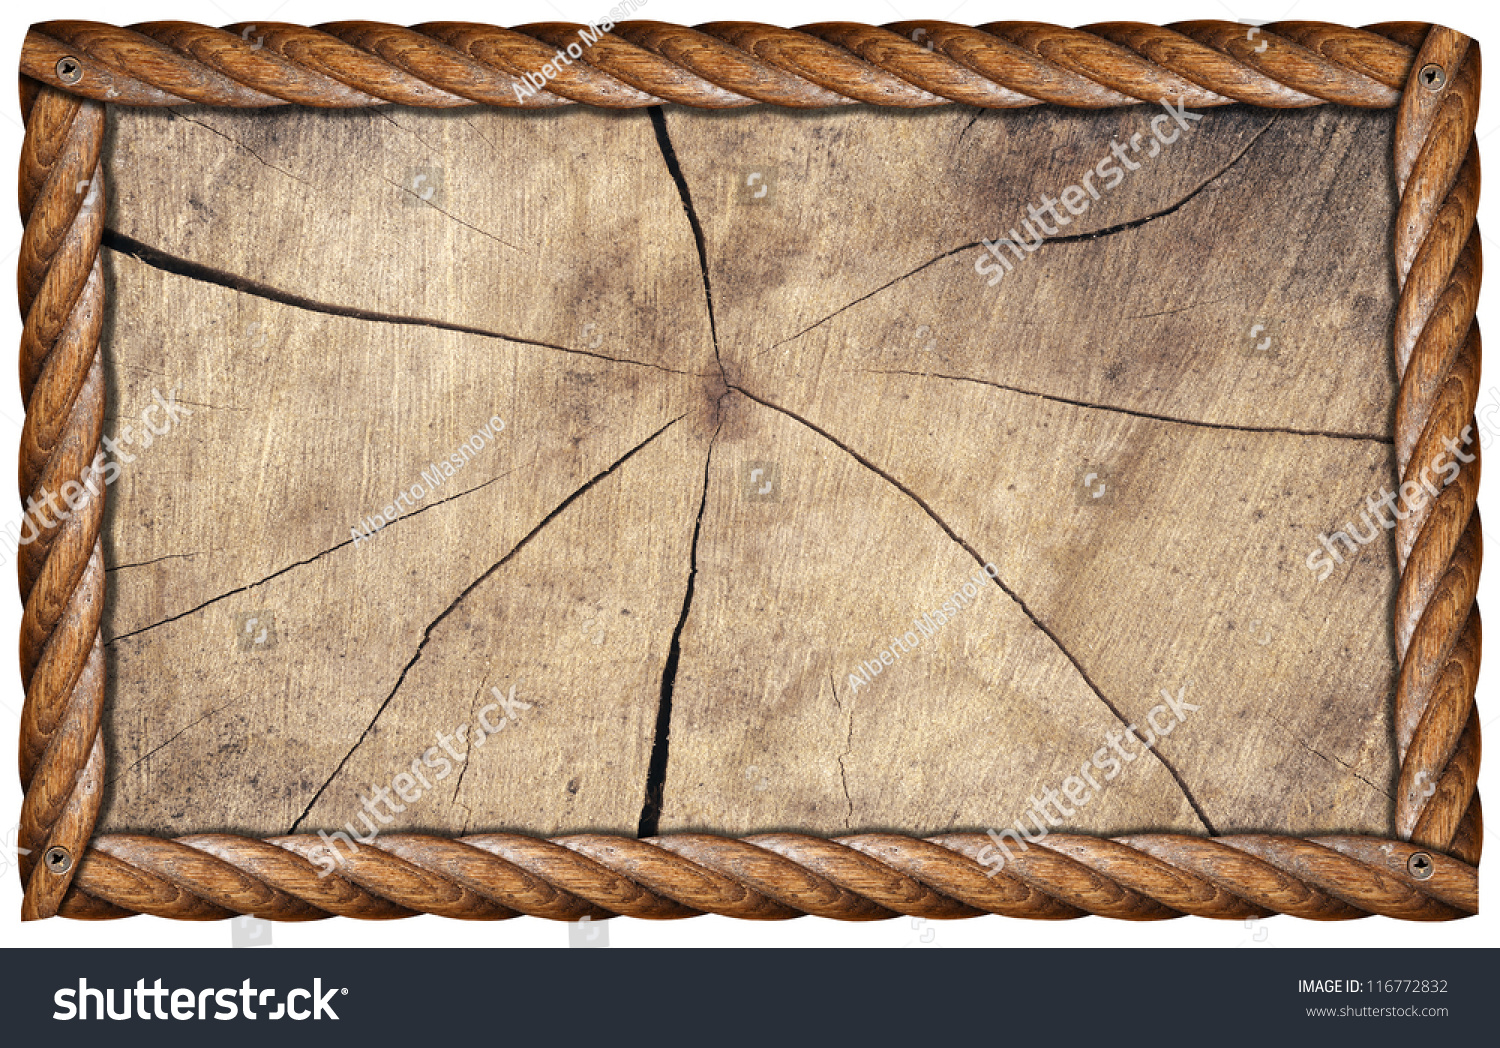 grunge wooden frame rectangular empty wooden frame isolated on white background